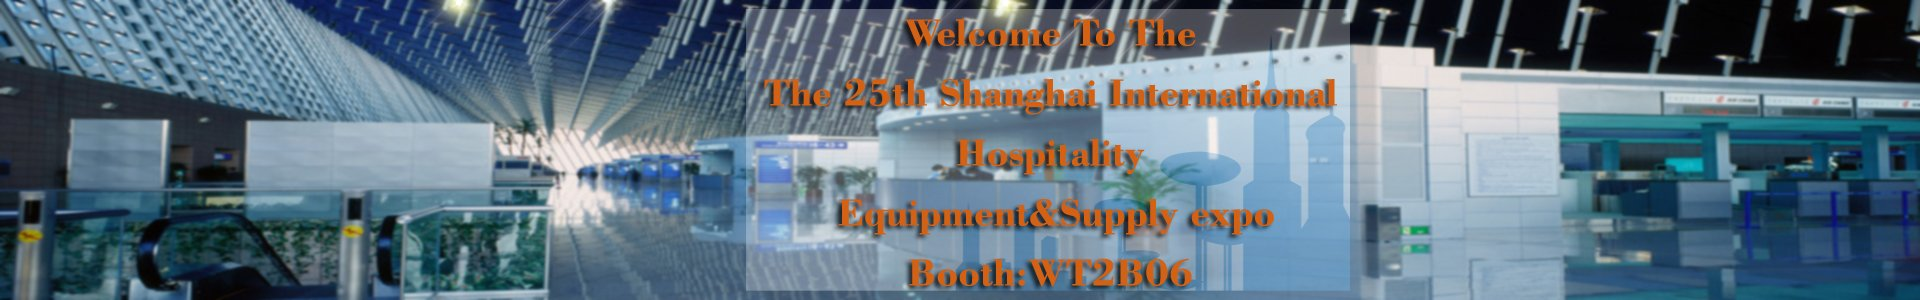 2015 annual summary of the conference in 2016-hot pot equipment- hot pot table- hot pot cooker-WINPAI